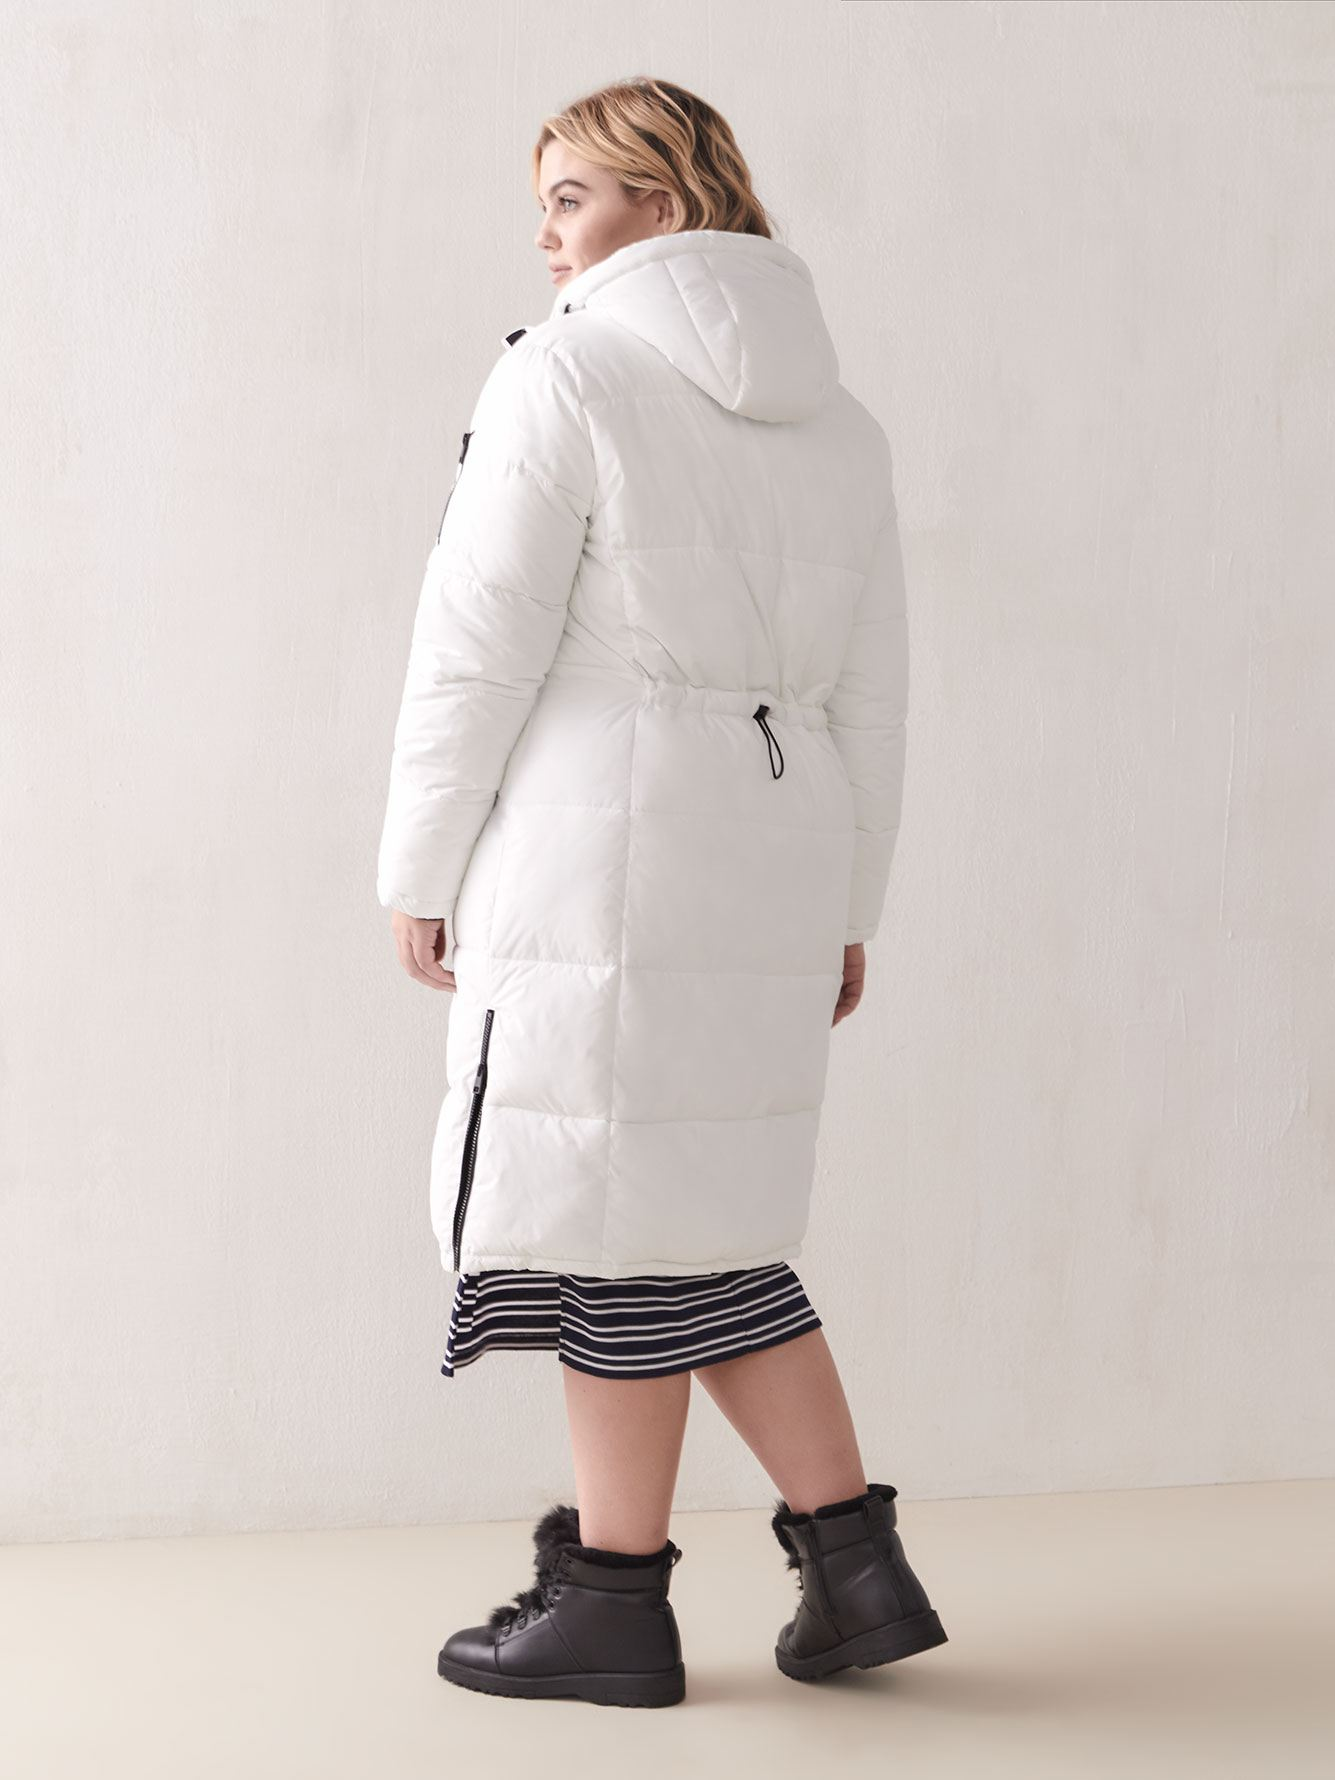 Manteau matelassé long blanc Atlantique - Addition Elle